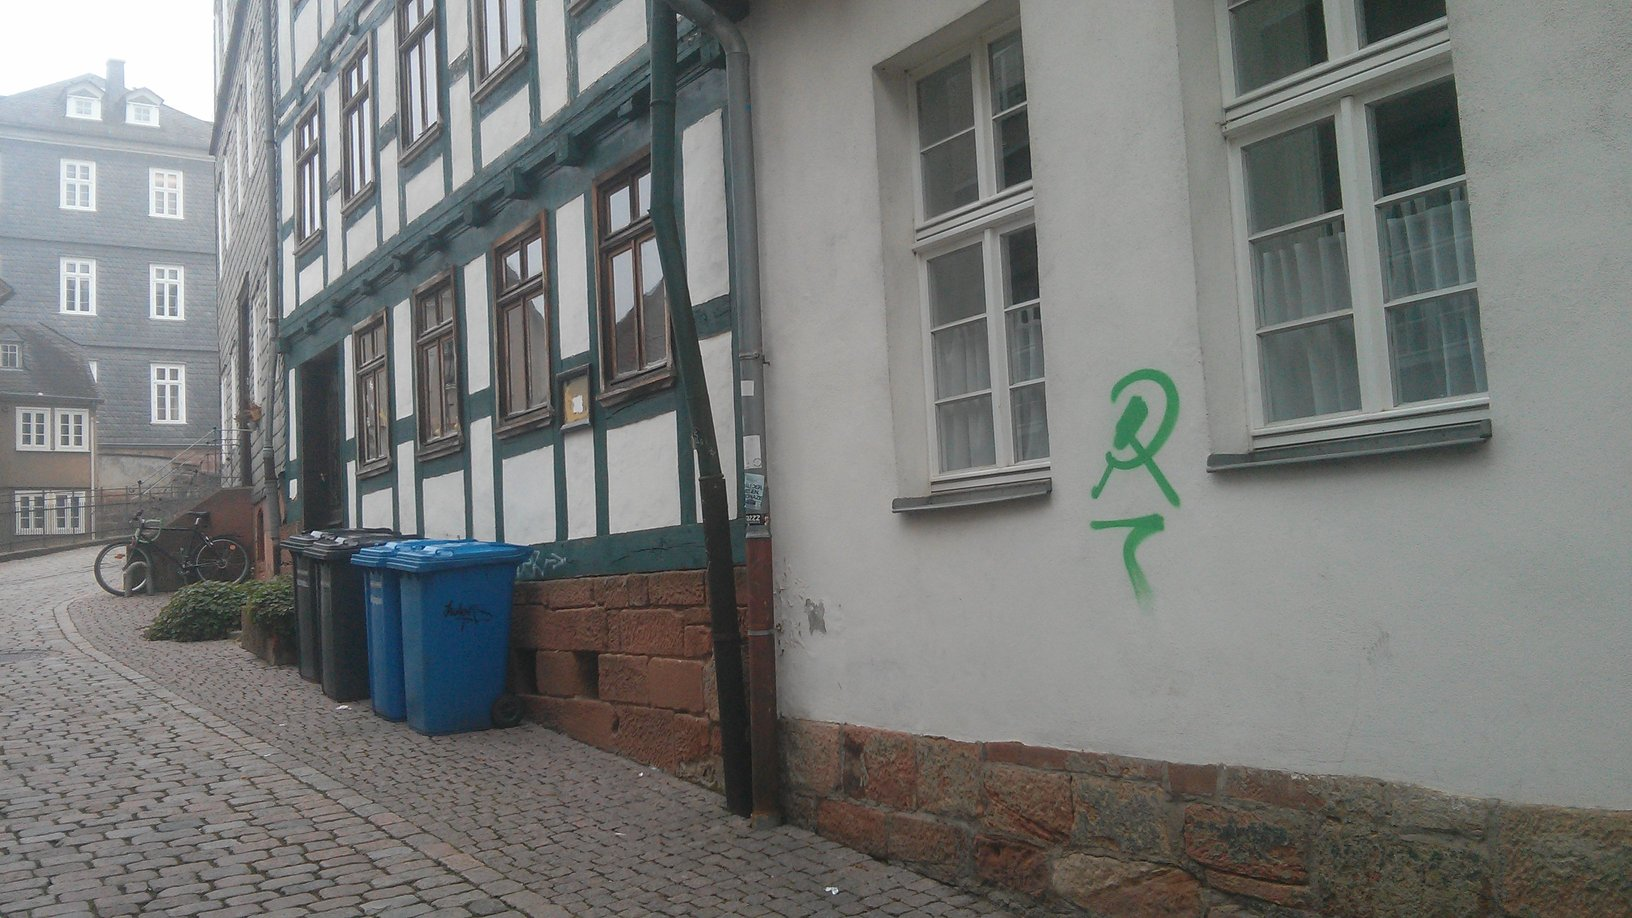 medieval houses? check. cute little bakeries? check. graffiti? check. oh wait.